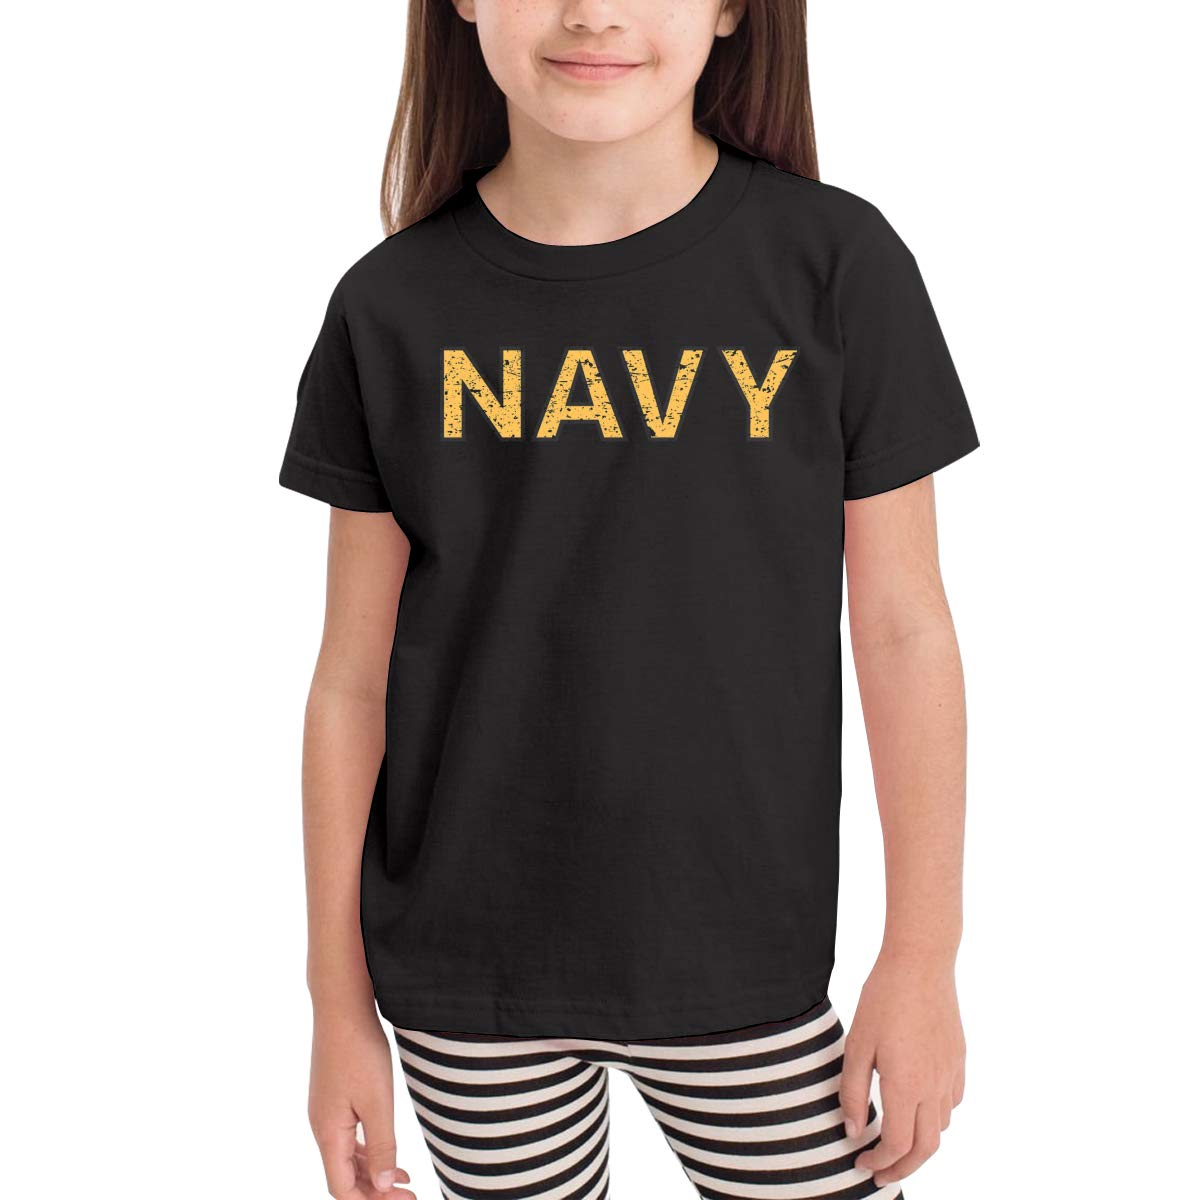 Onlybabycare US Navy 100/% Cotton Toddler Baby Boys Girls Kids Short Sleeve T Shirt Top Tee Clothes 2-6 T